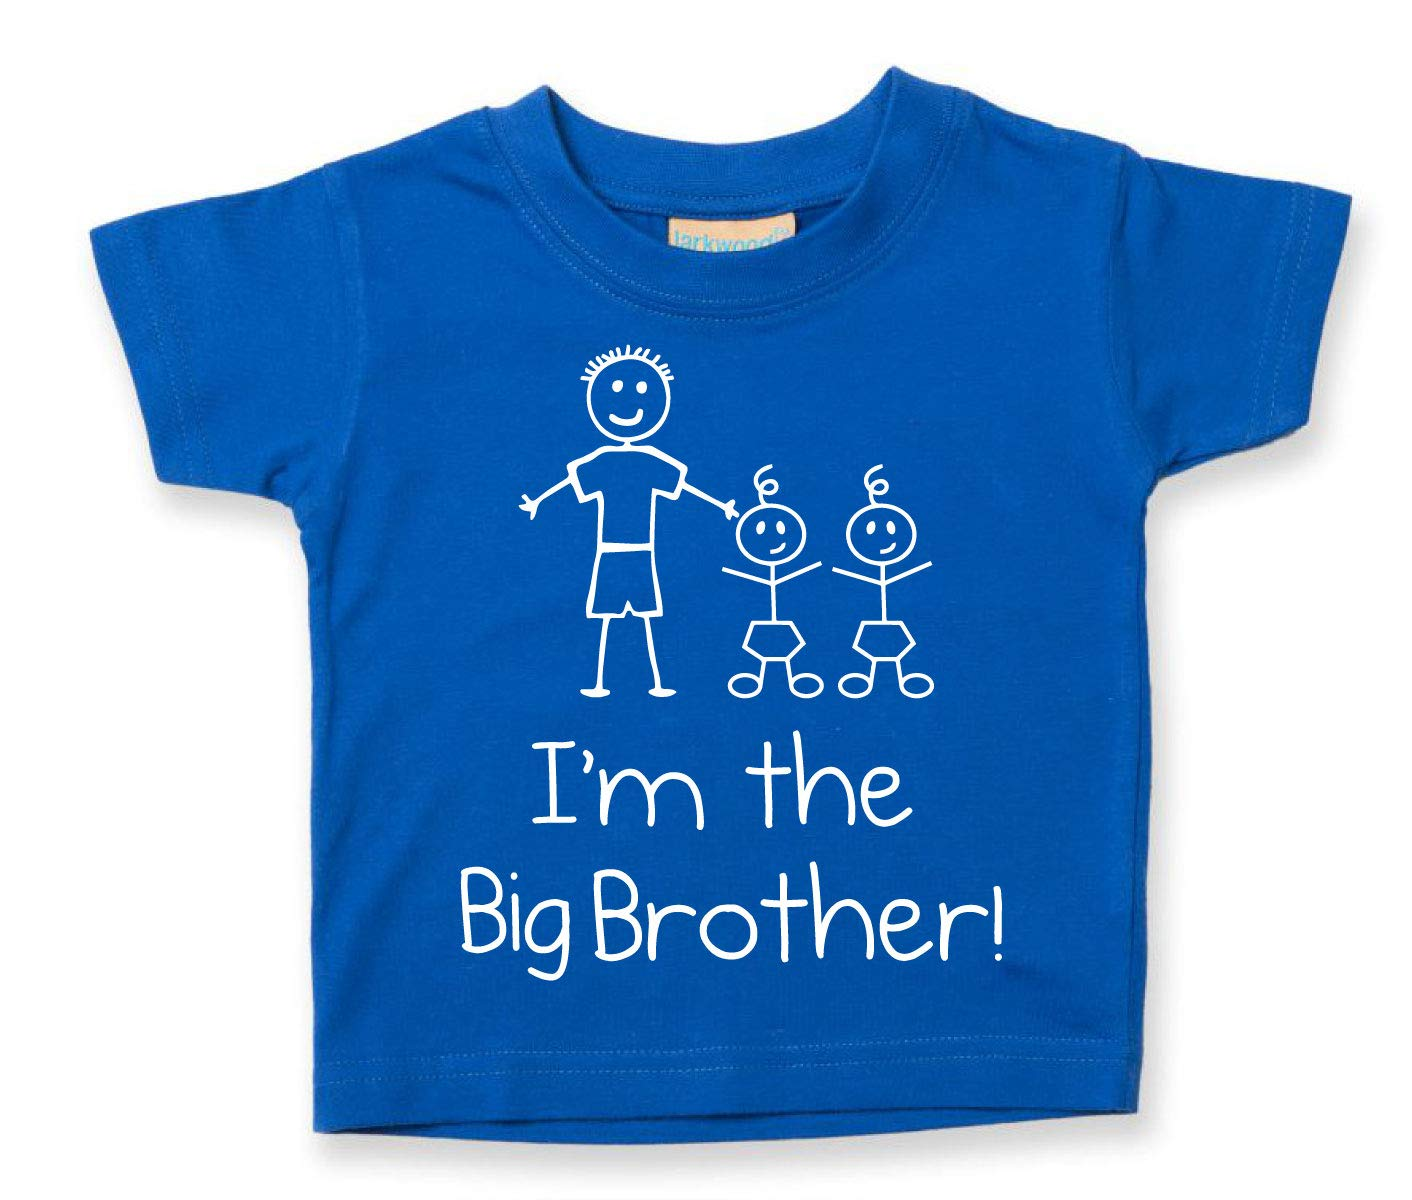 I'm The Big Brother Twins Tshirt Baby Toddler Kids Available in Sizes 0-6 Months to 14-15 Years New Baby 60 Second Makeover Limited